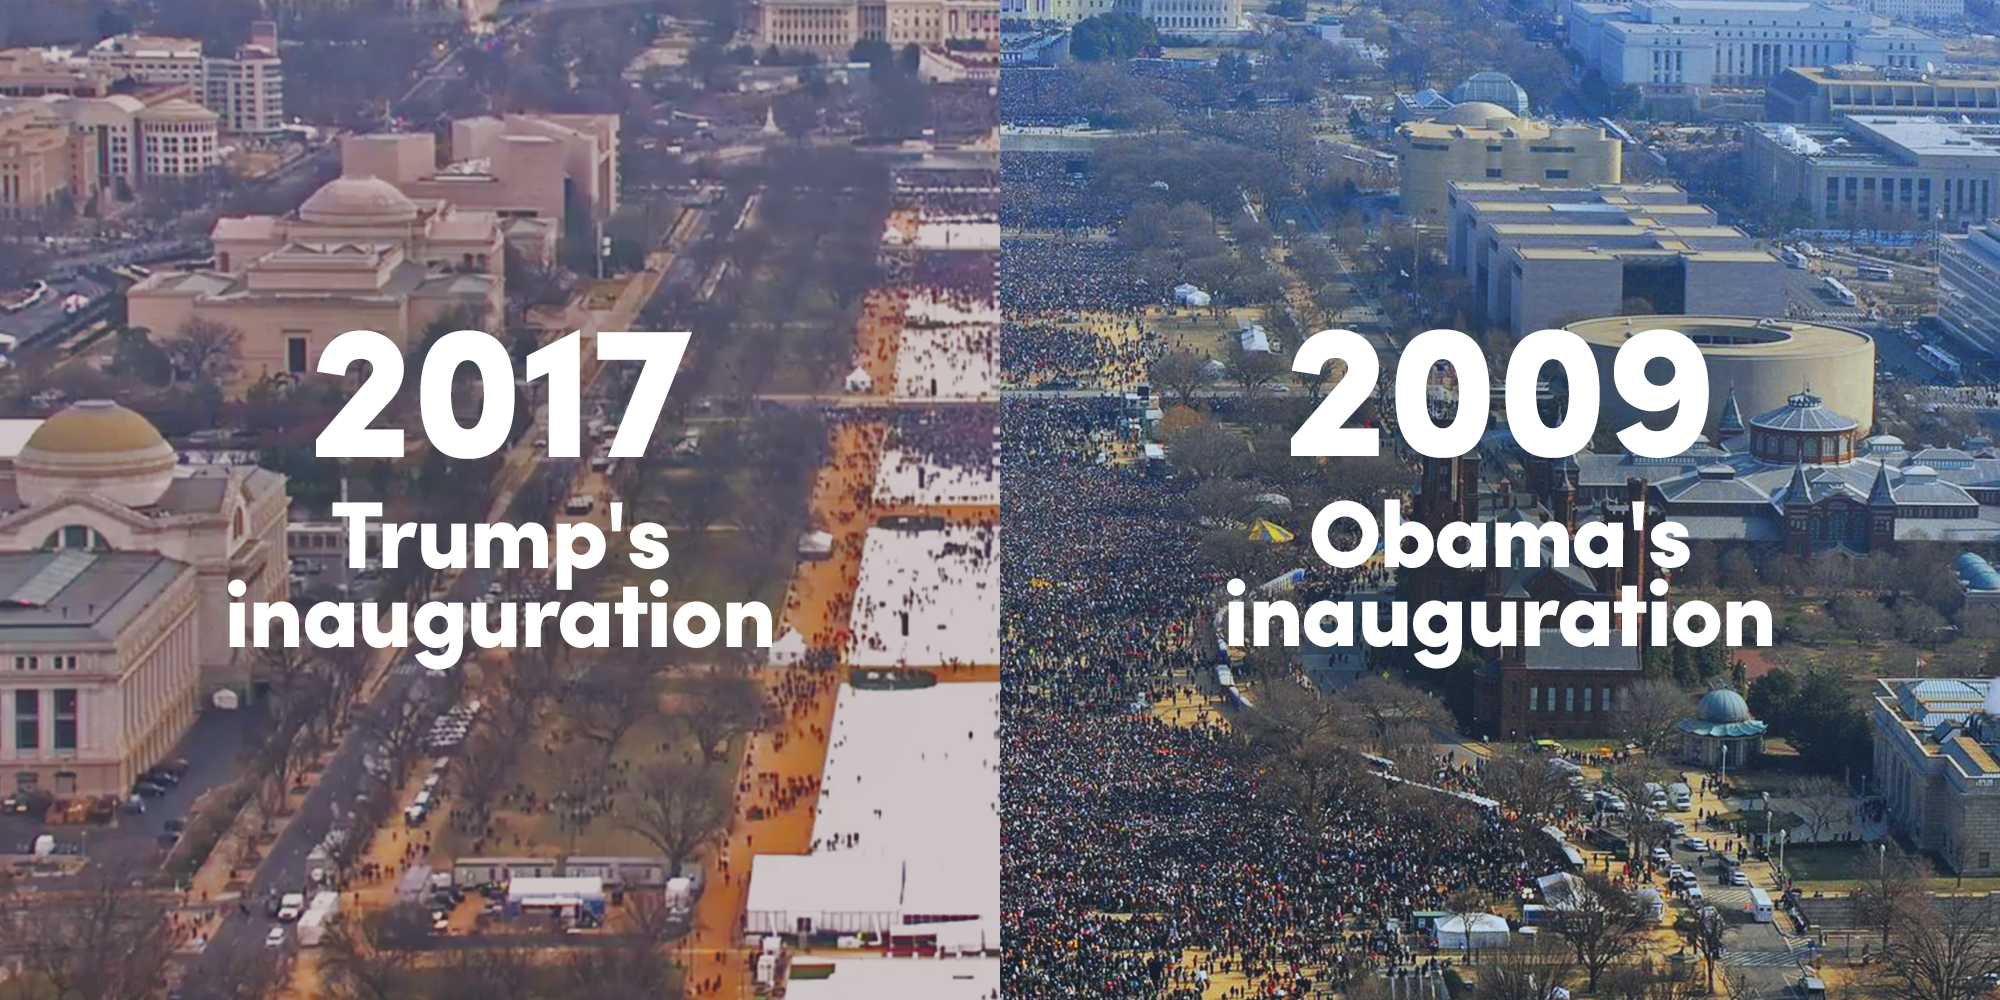 Less people attend trump inauguration than obama